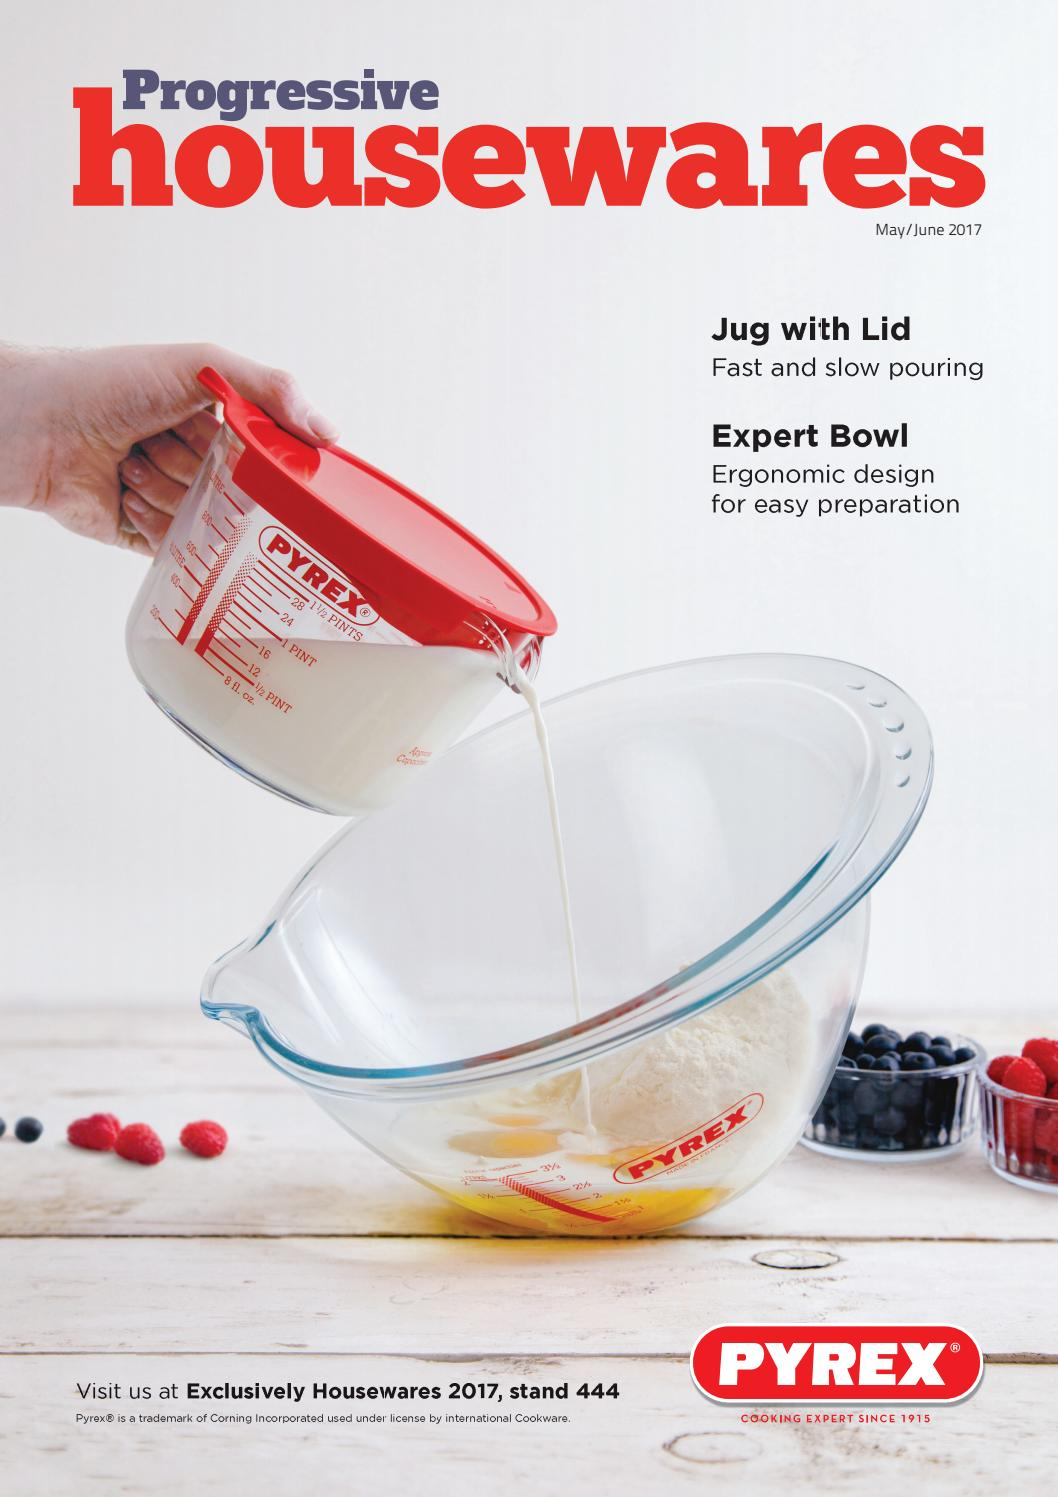 Progressive Housewares May/June 2017 by Max Publishing - issuu